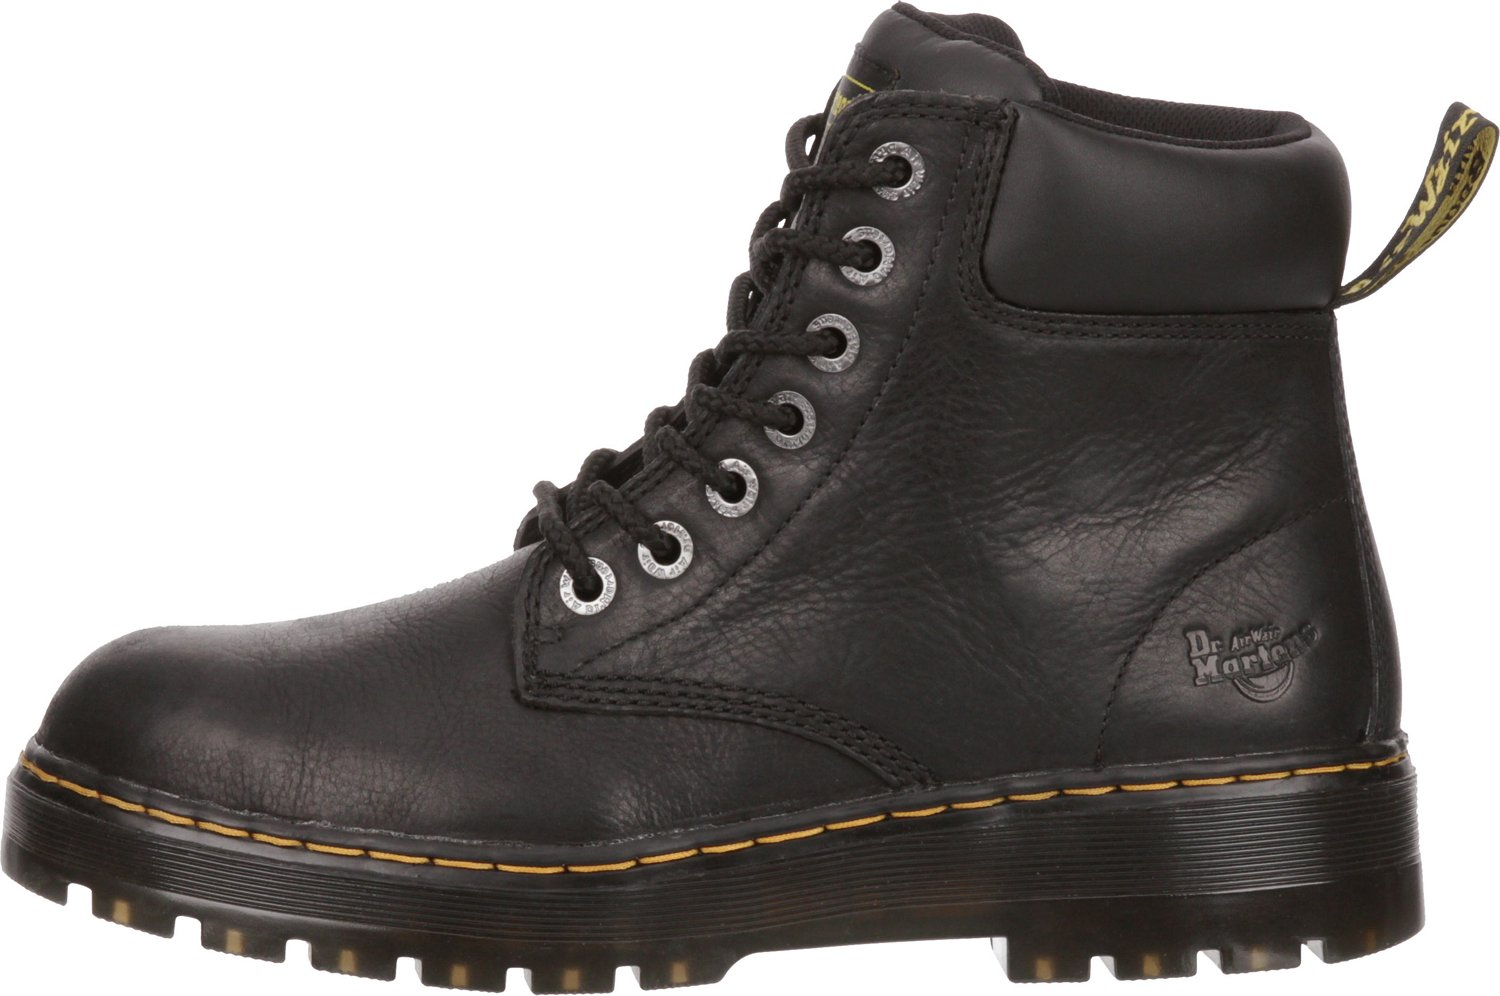 587ff460a07 Dr. Martens Men's Trade Winch EH Steel Toe Lace Up Work Boots